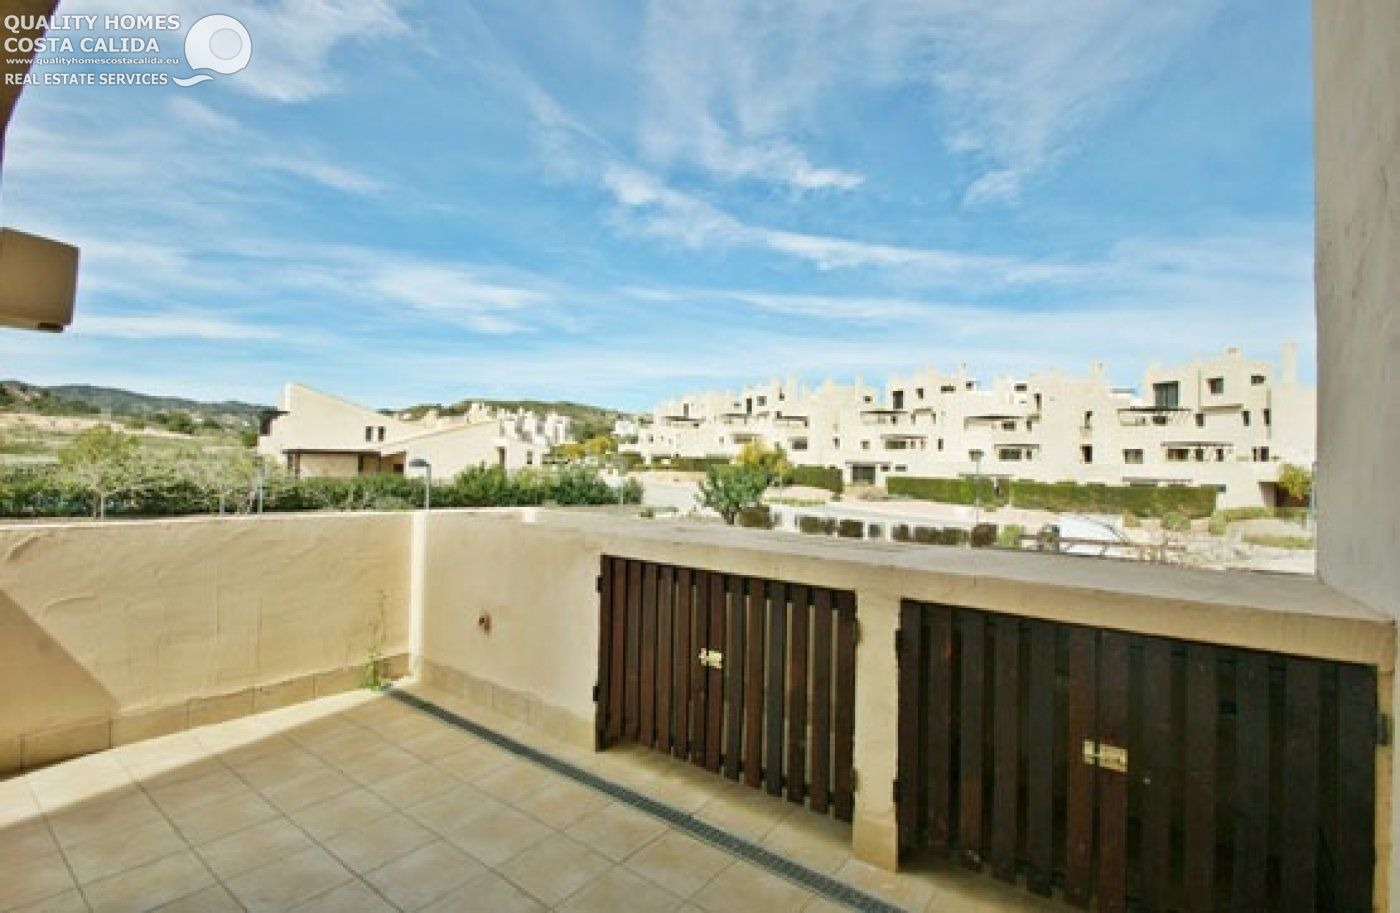 Gallery Image 16 of Maybe the best investment in the Murcia Region